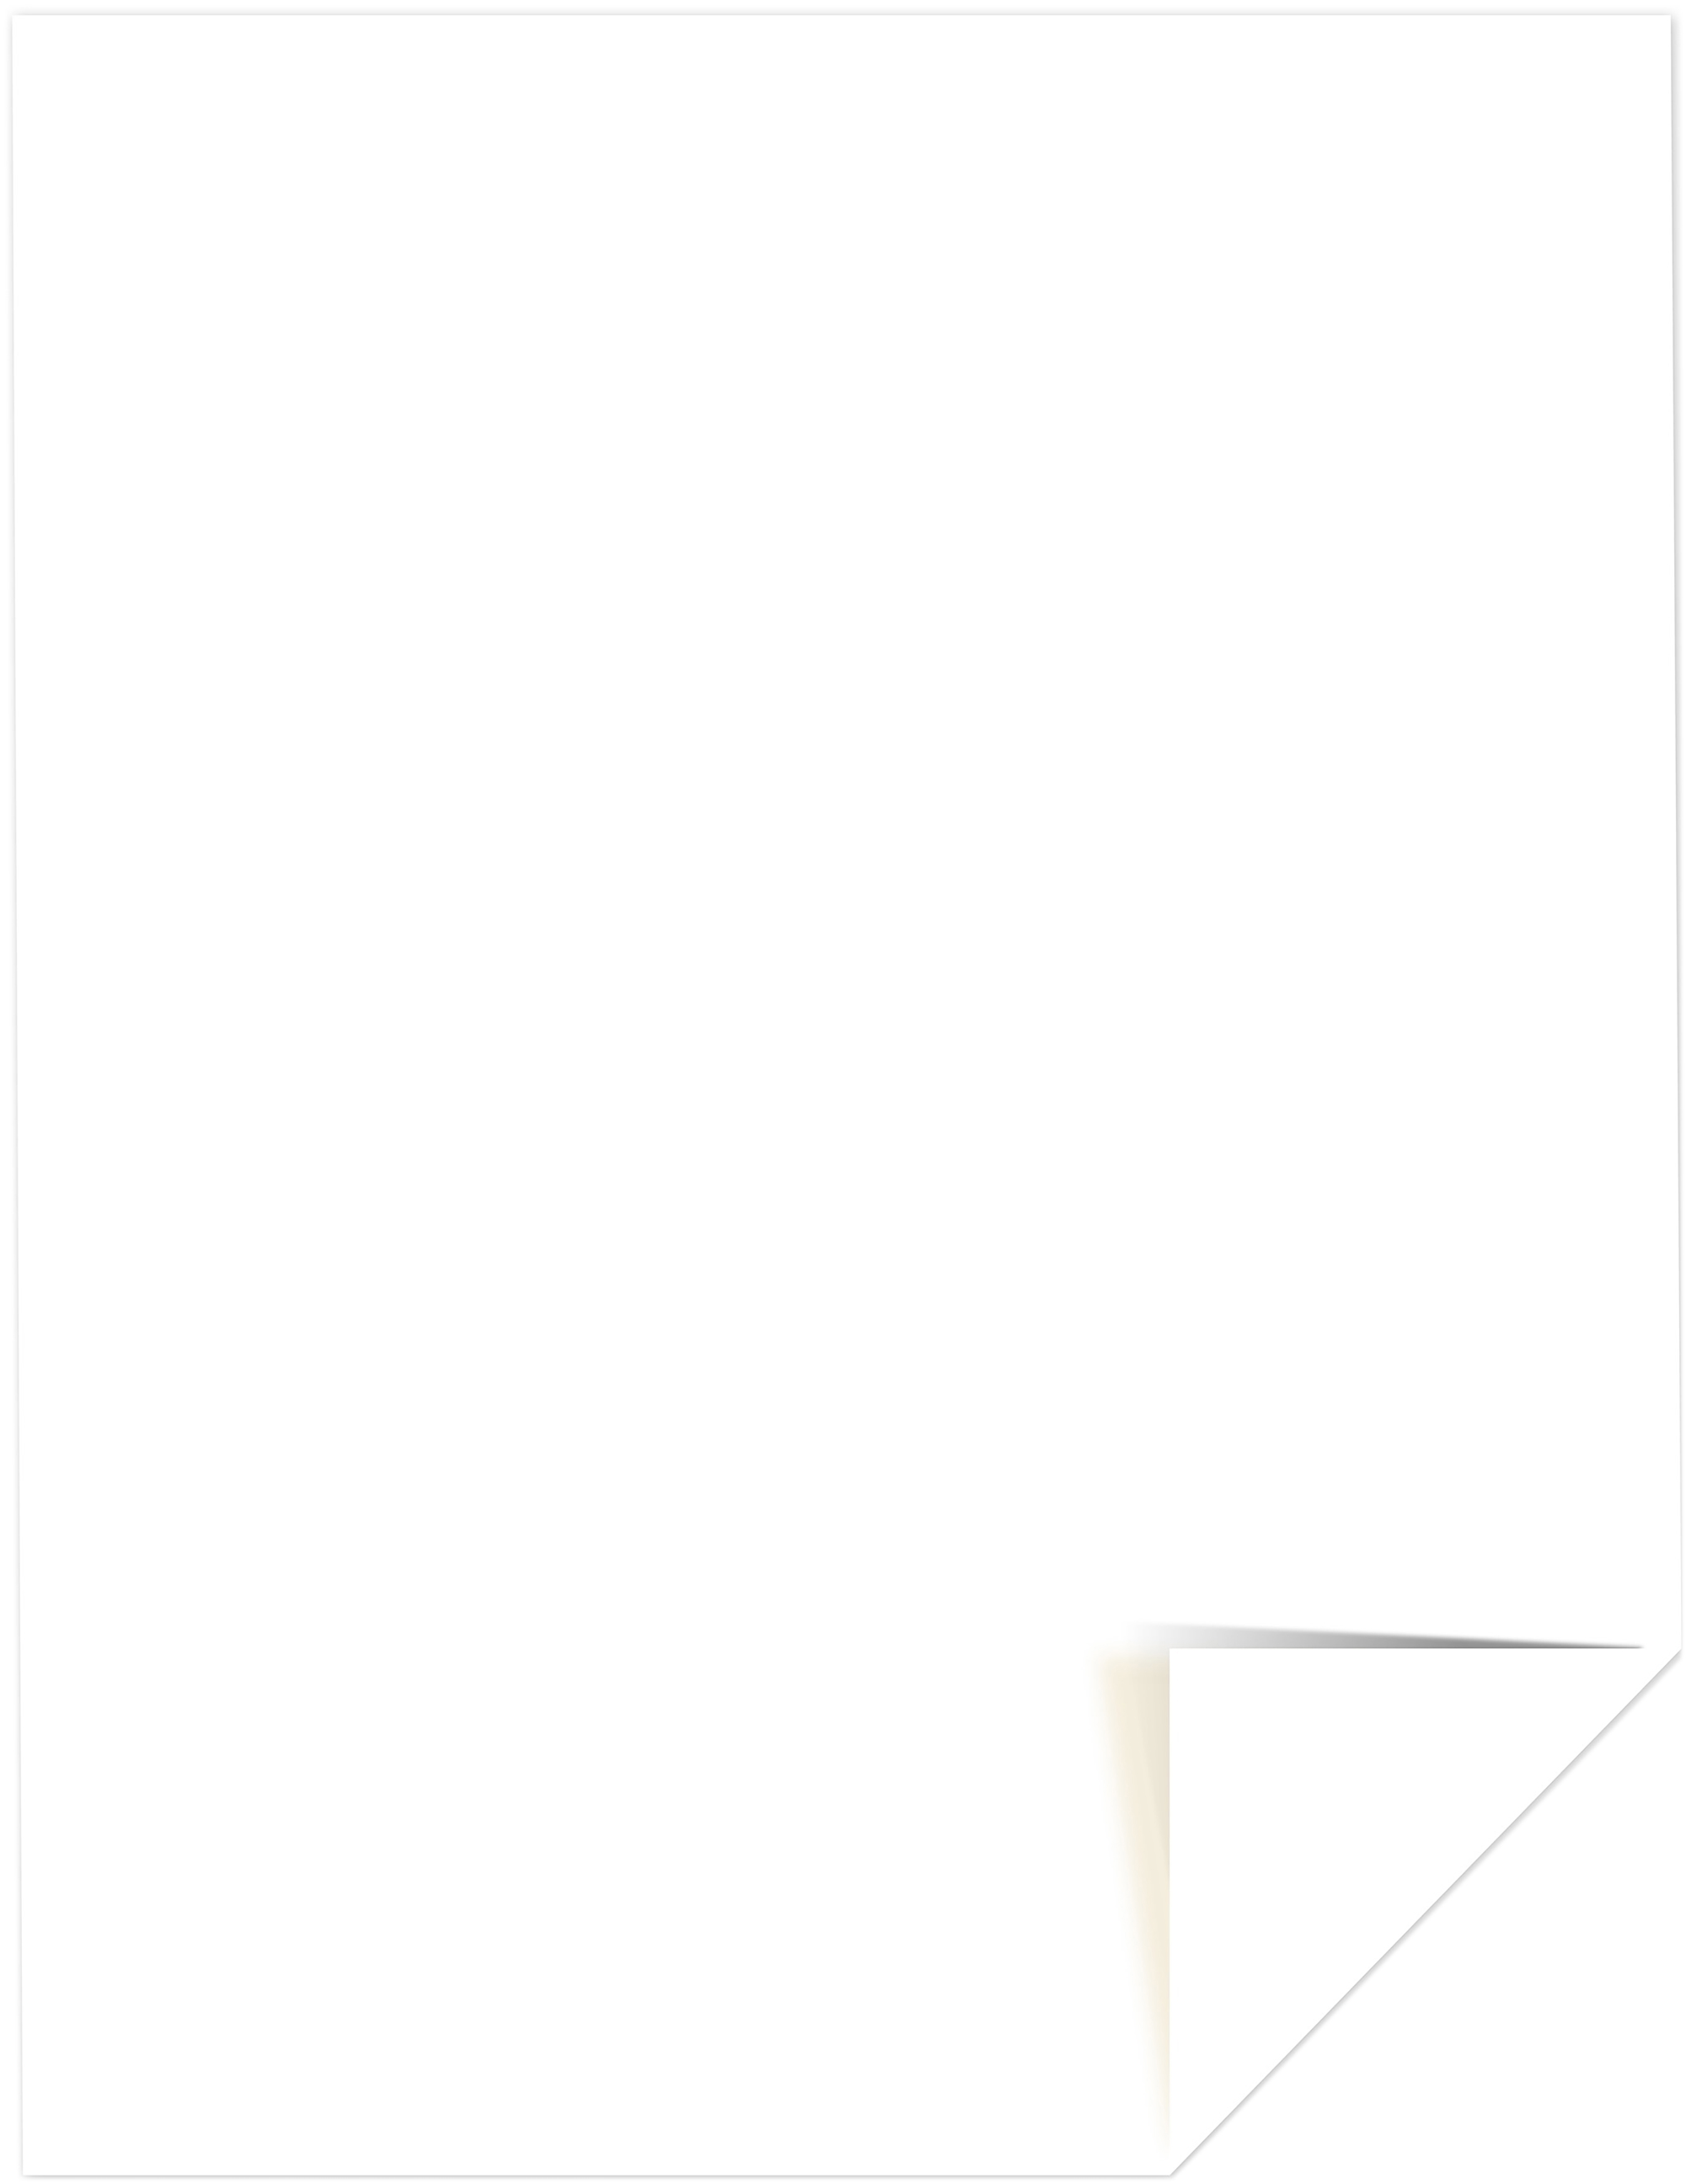 Neenah Classic Crest 110lb Cardstock - Solar White, 8-1/2 x 11, 125 Sheets